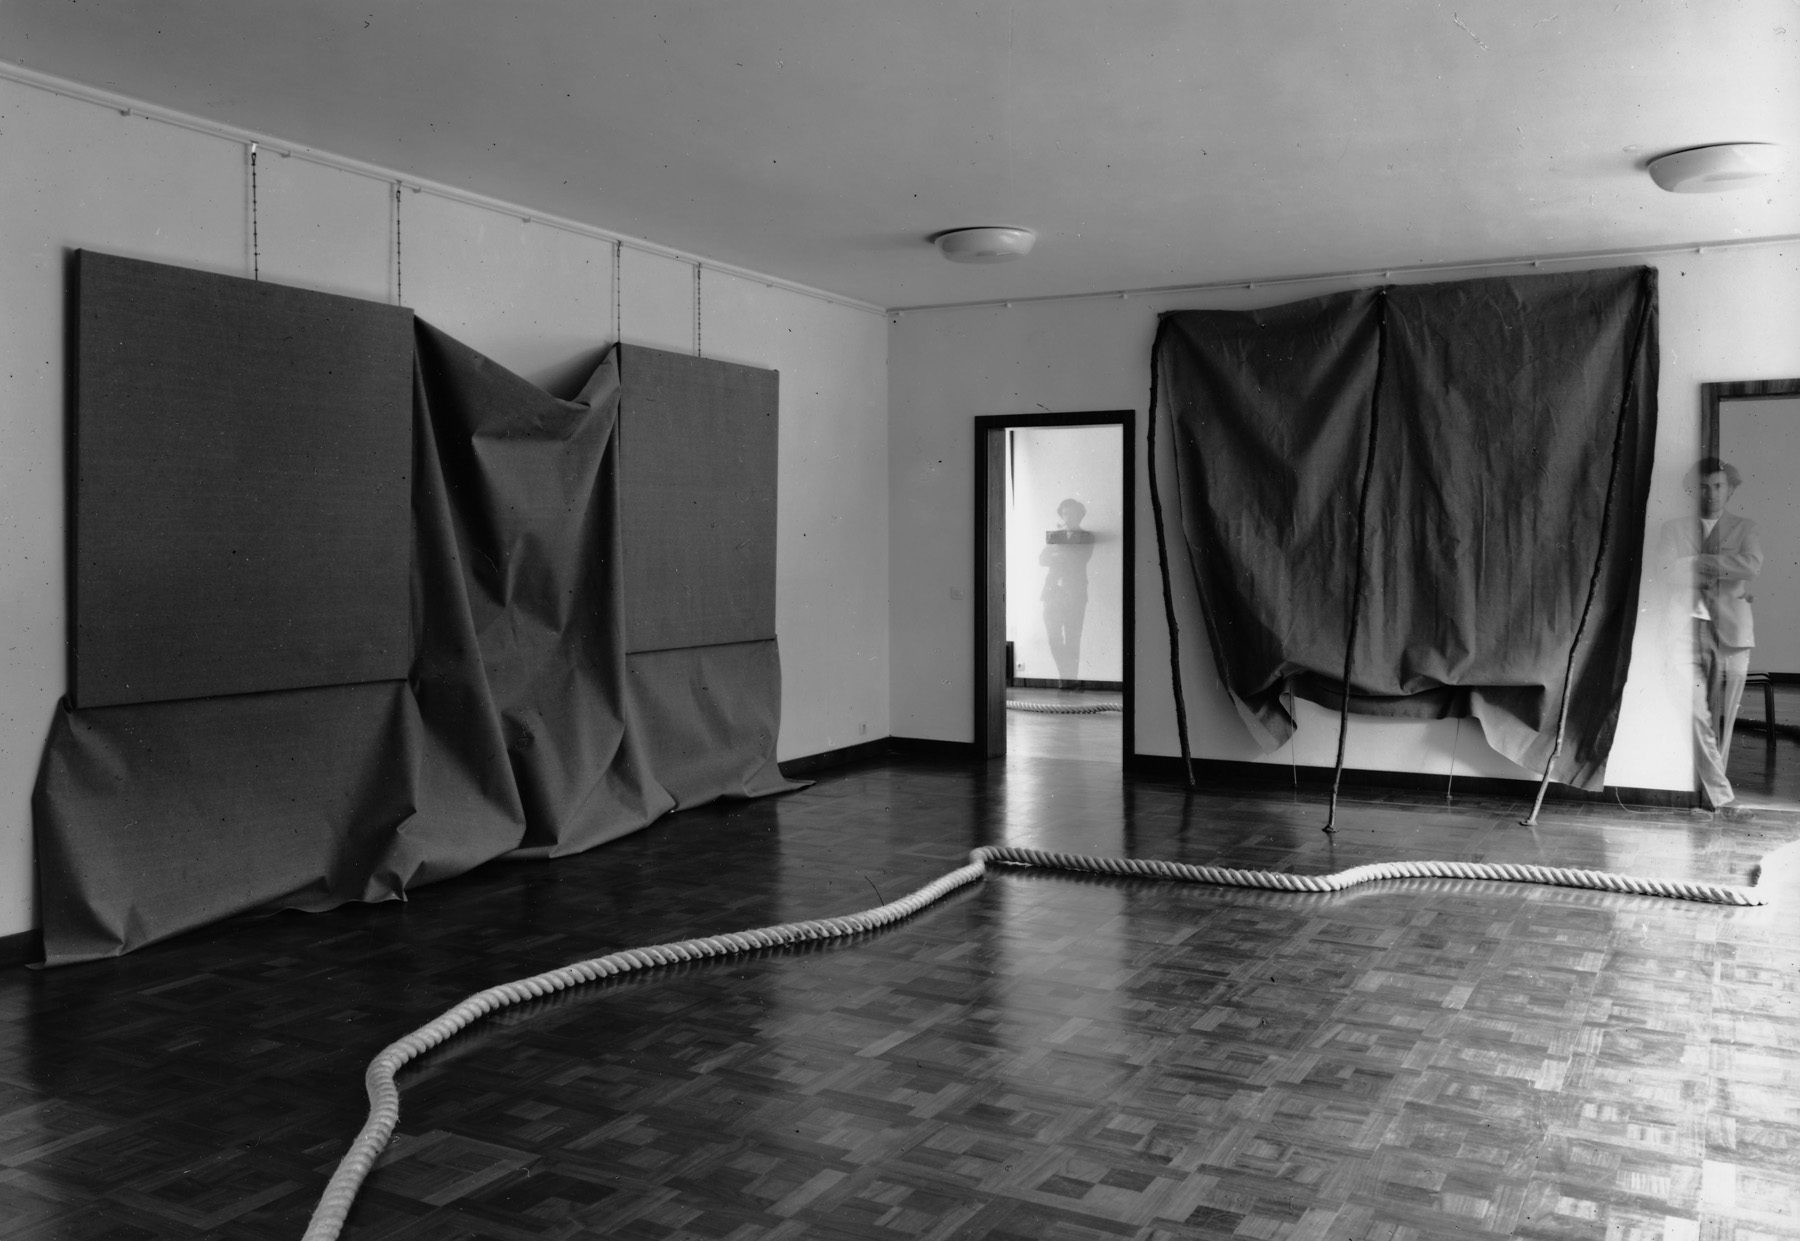 Barry Flanagan three space rope sculpture 69, 1969 installed in 'Object sculptures', Museum Haus Lang, Krefeld, 1969.